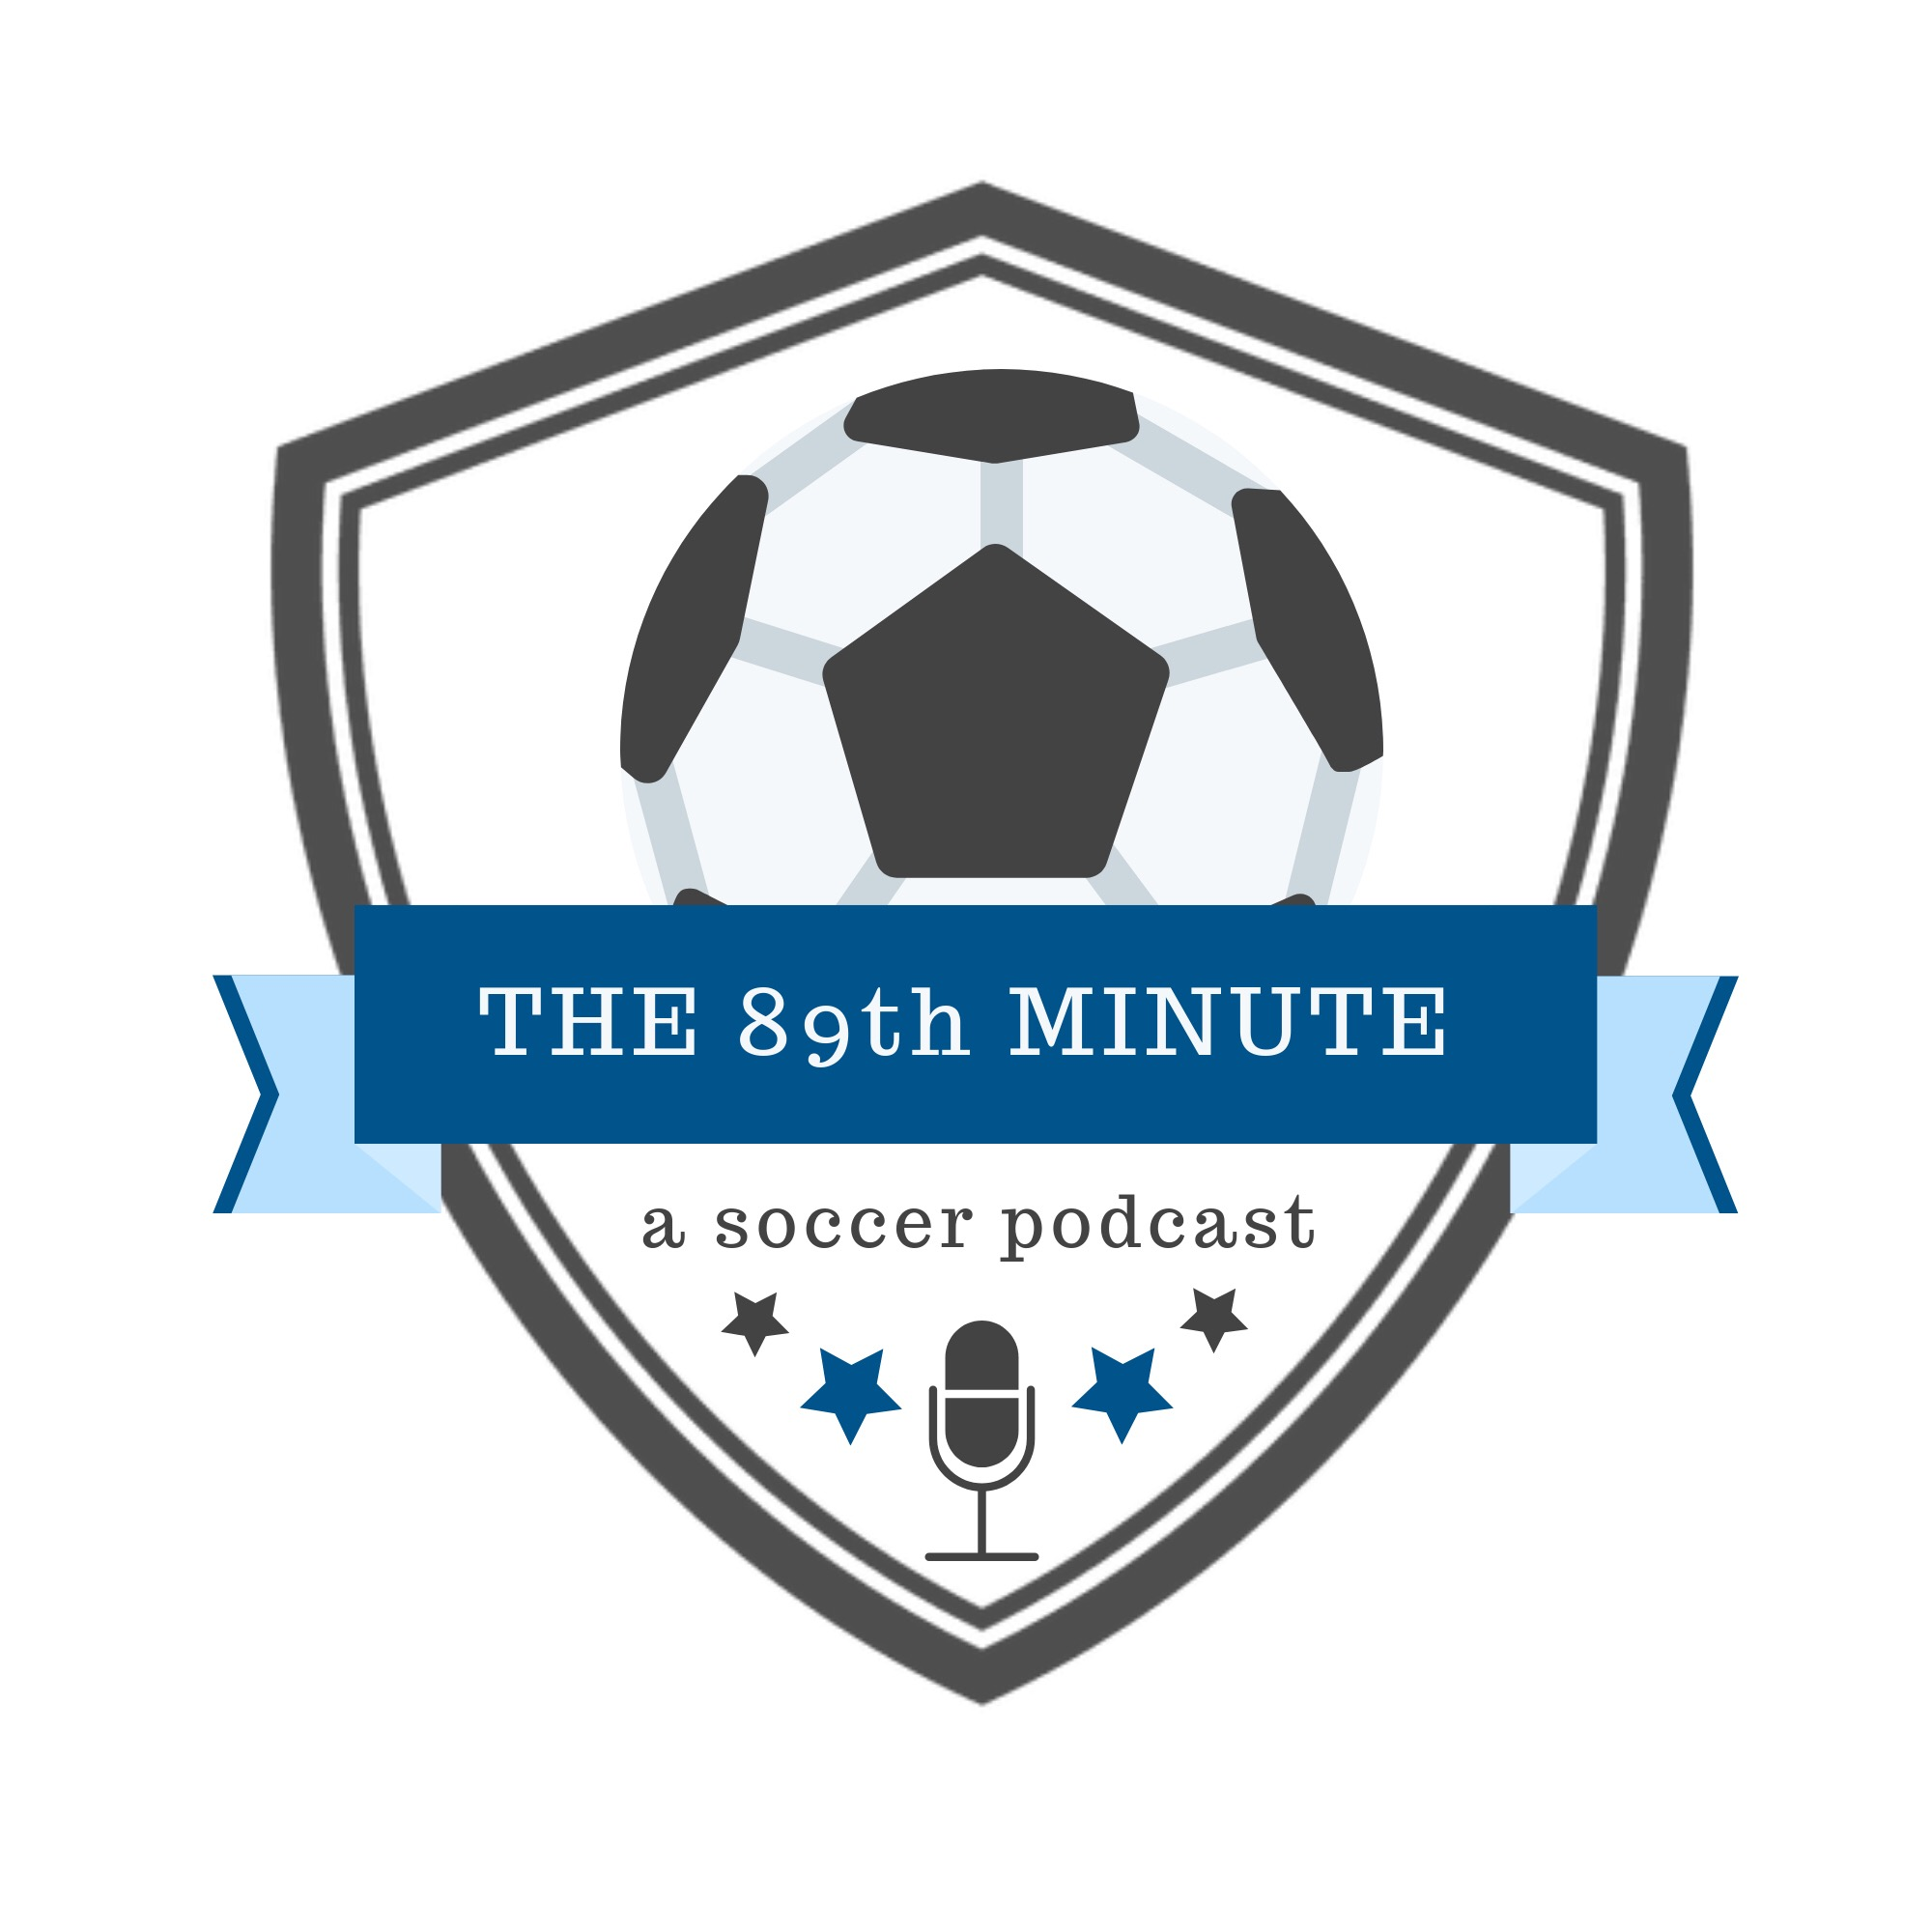 The 89th Minute: A Soccer Podcast